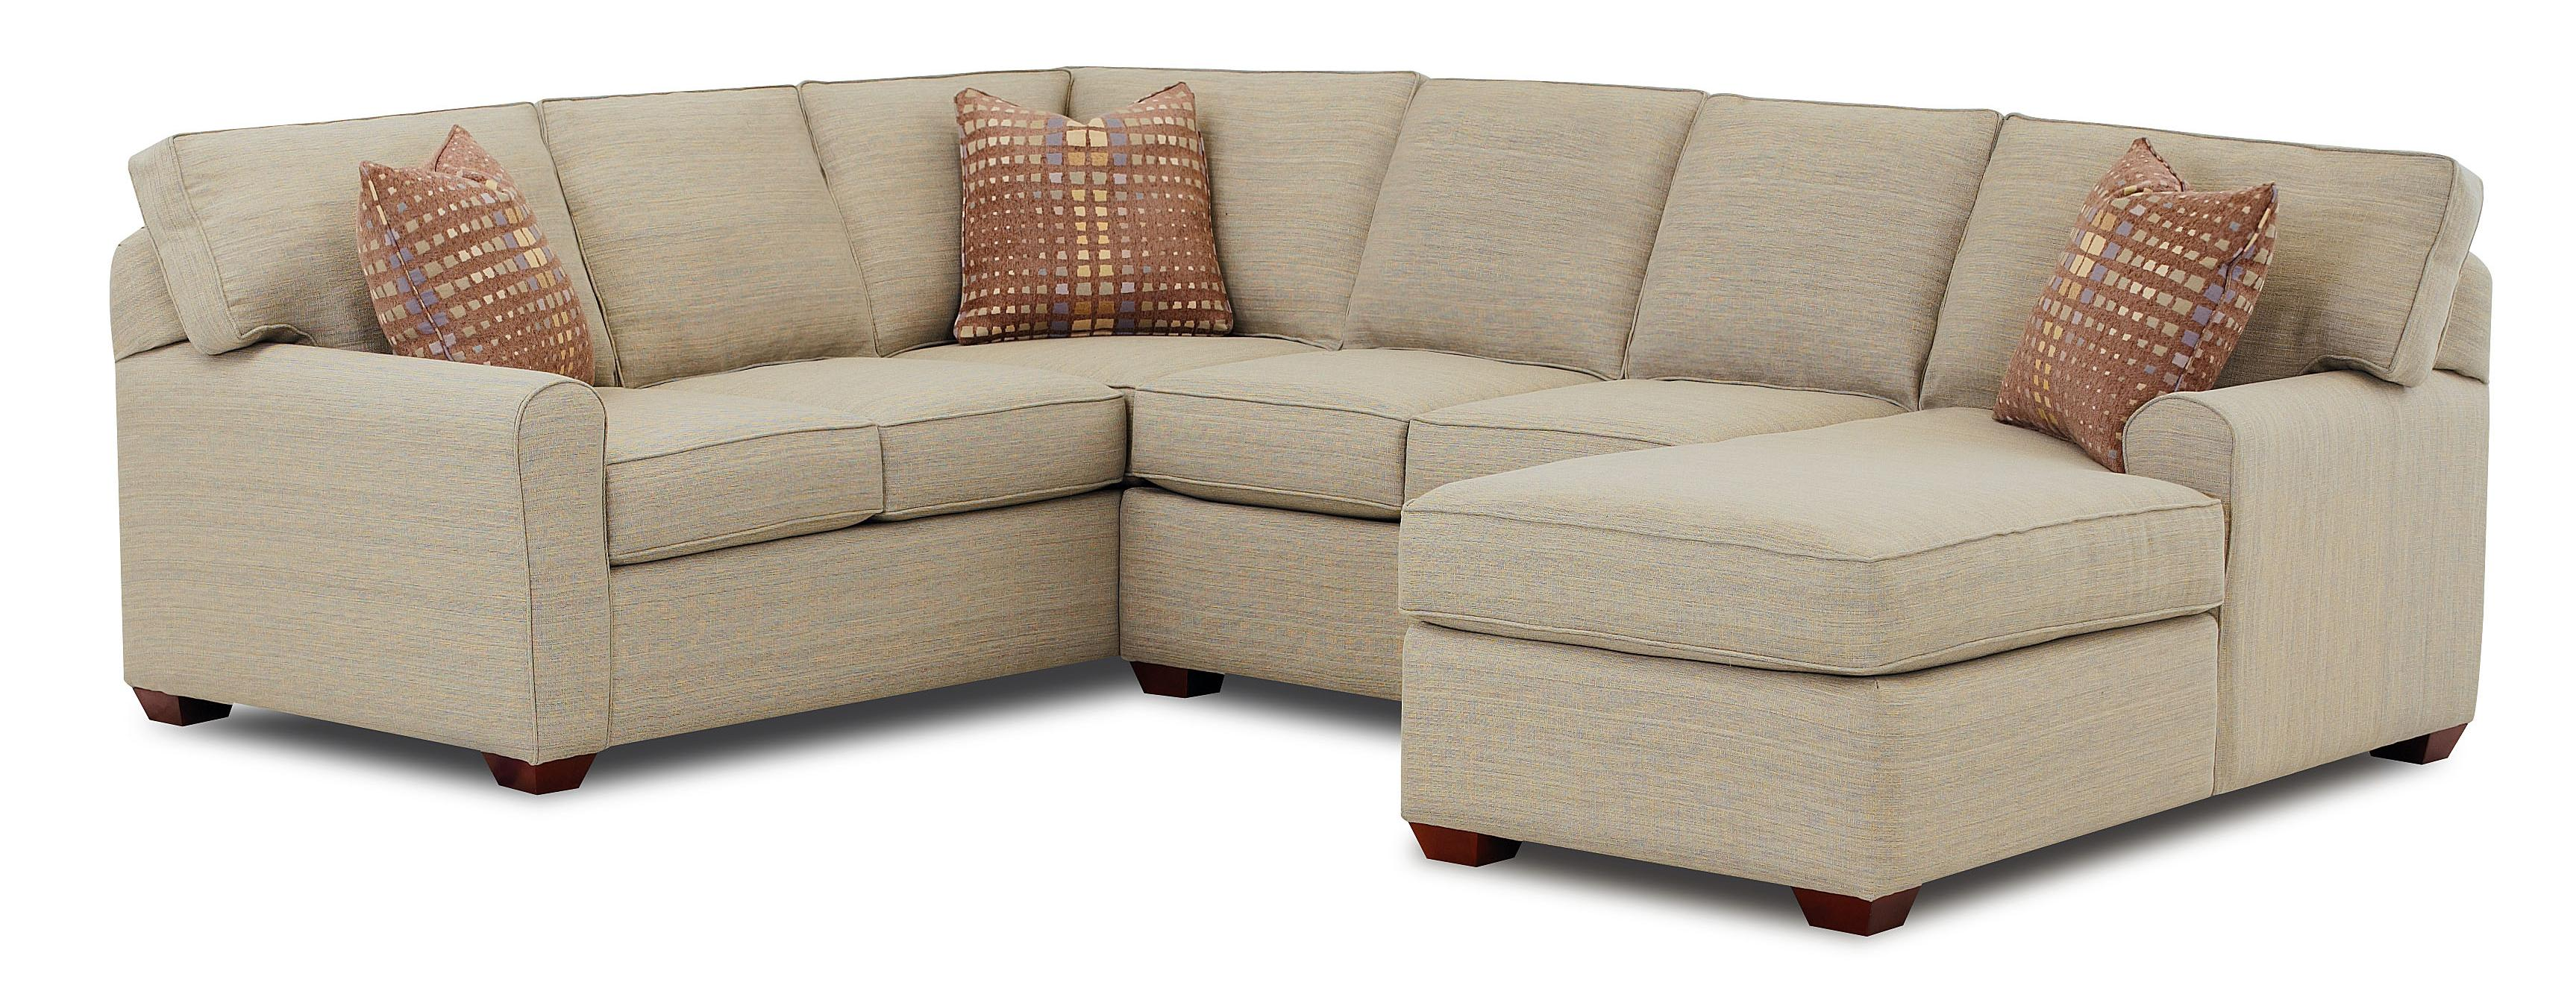 Klaussner Hybrid Sectional Sofa with Right Facing Chaise Lounge